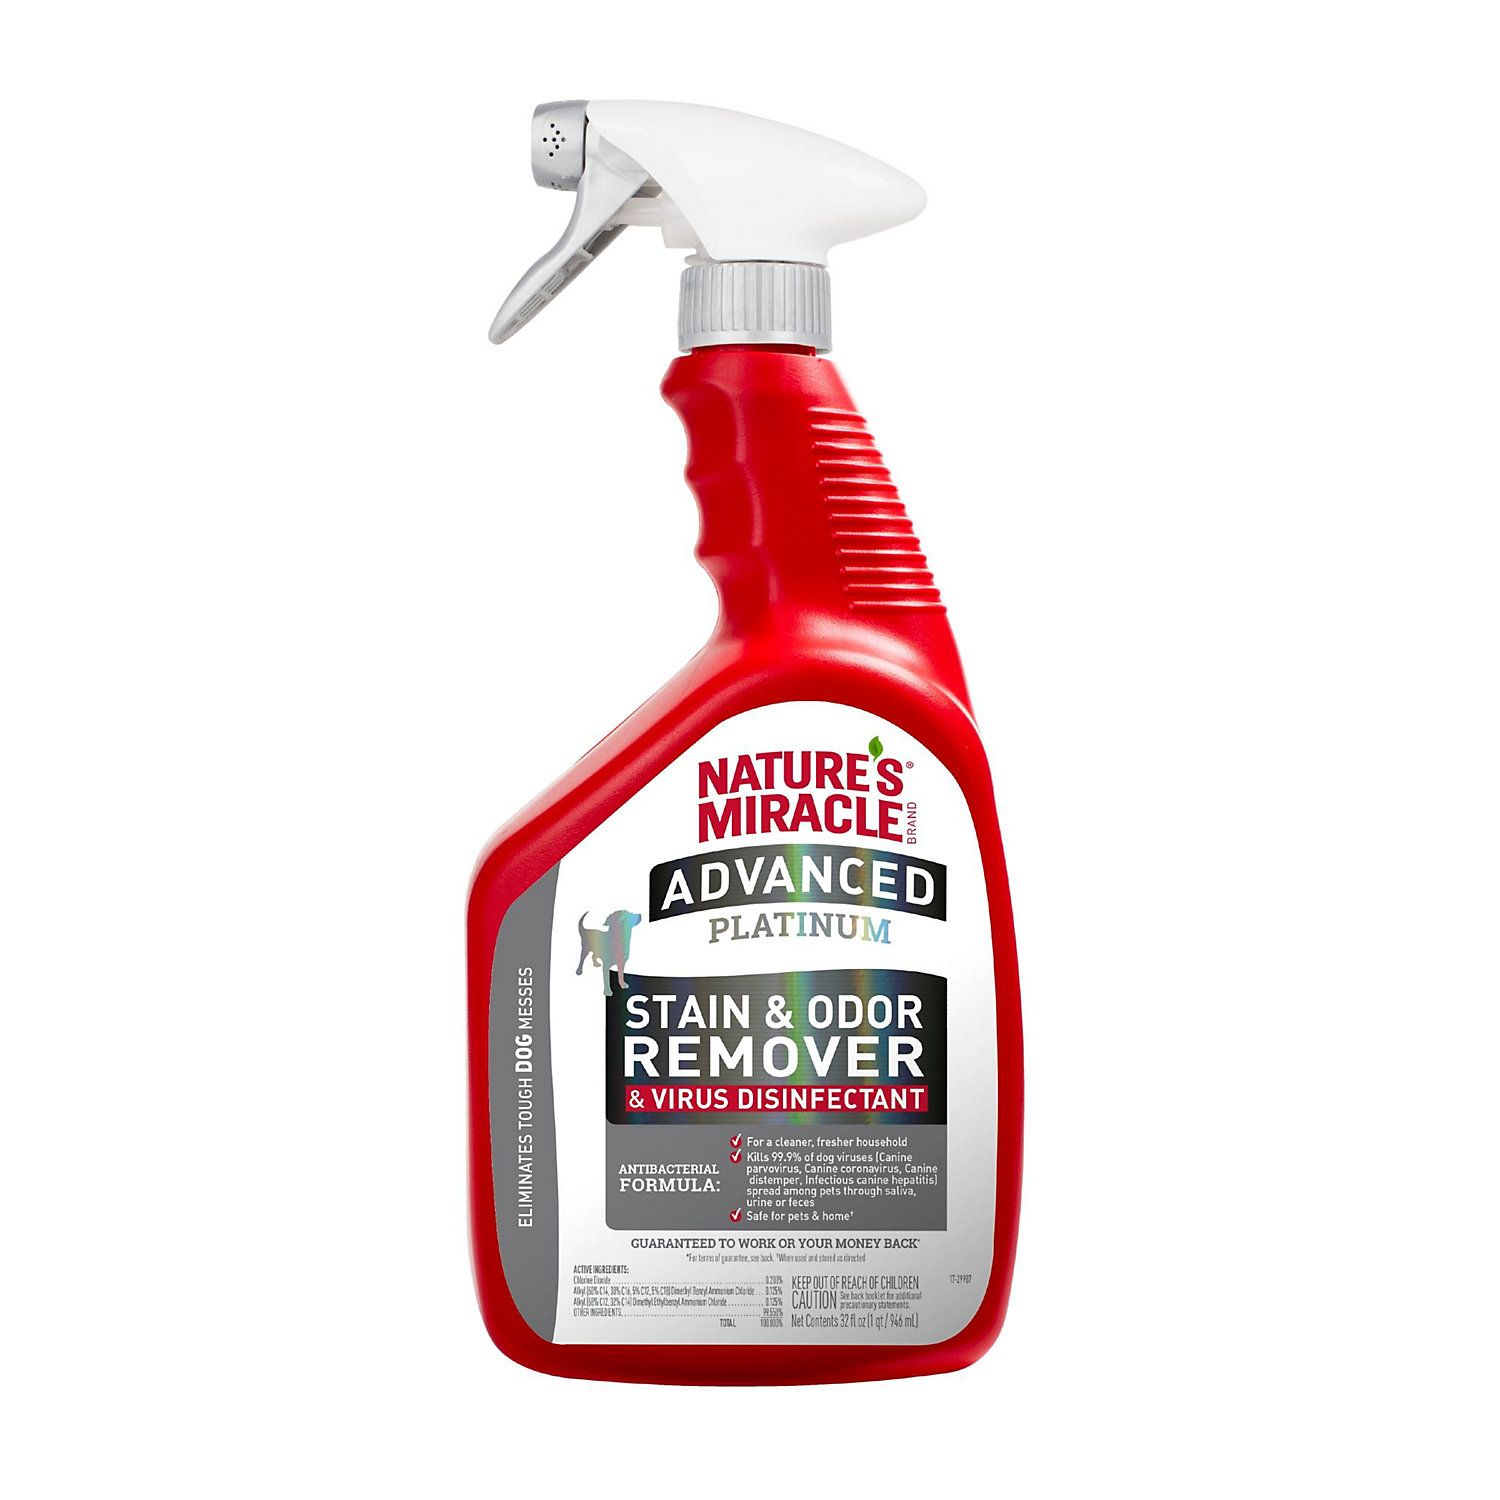 Nature's Miracle Advanced Platinum Stain & Odor Remover and